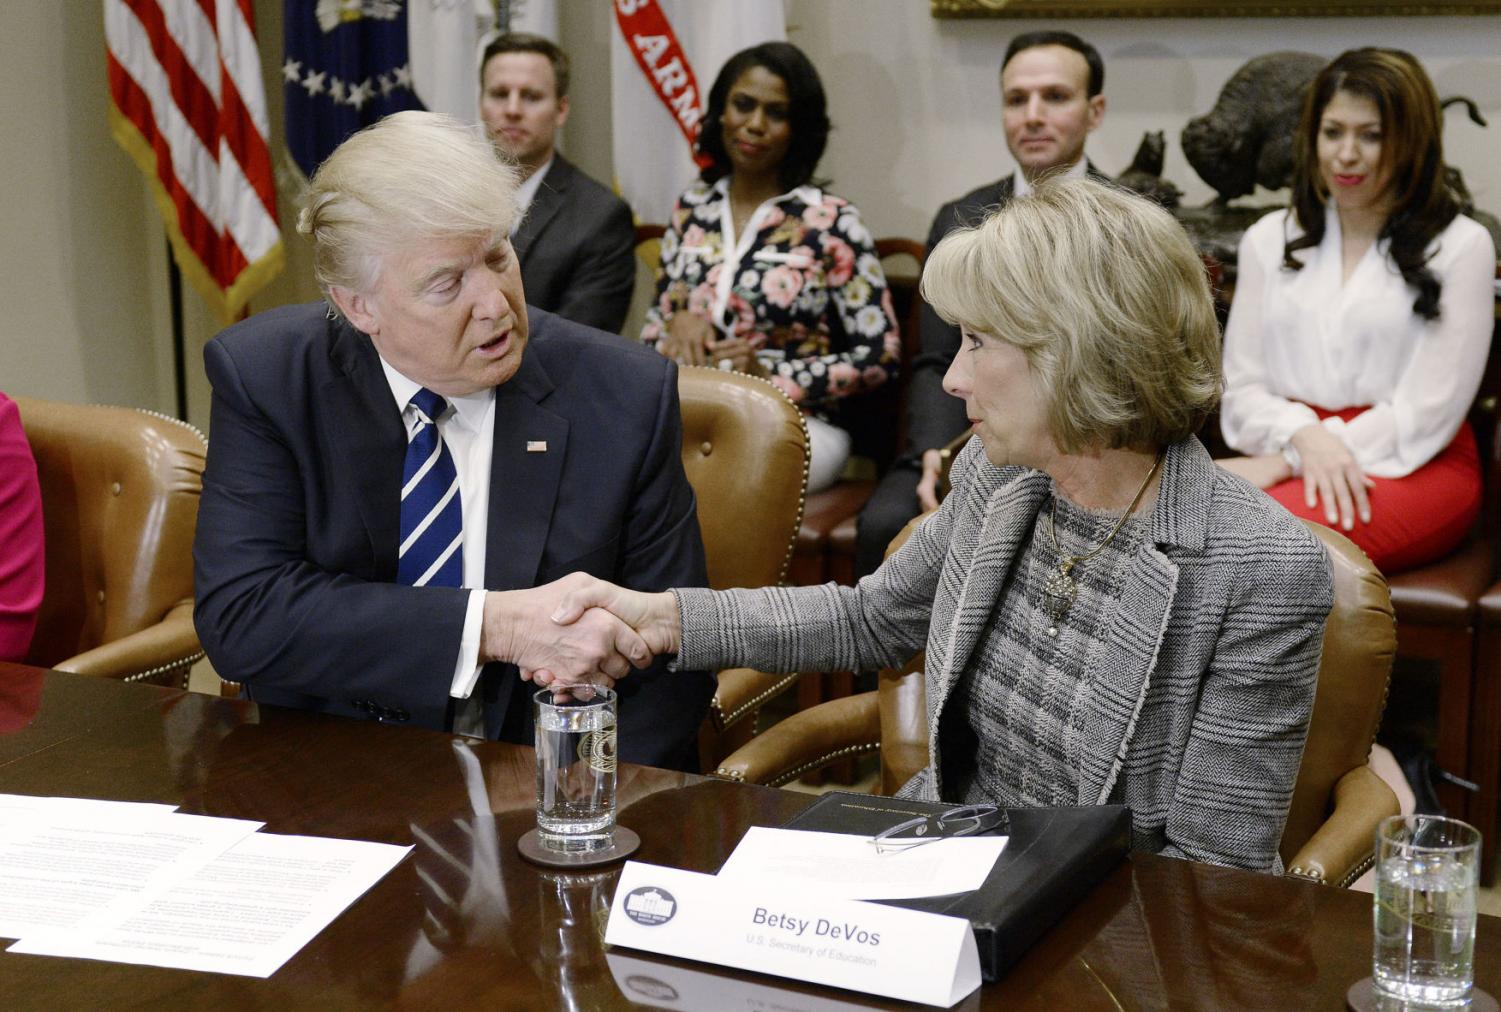 President Donald Trump congratulates Education Secretary Betsy DeVos during a parent-teacher conference listening session in the Roosevelt Room of the White House Feb. 14 in Washington.